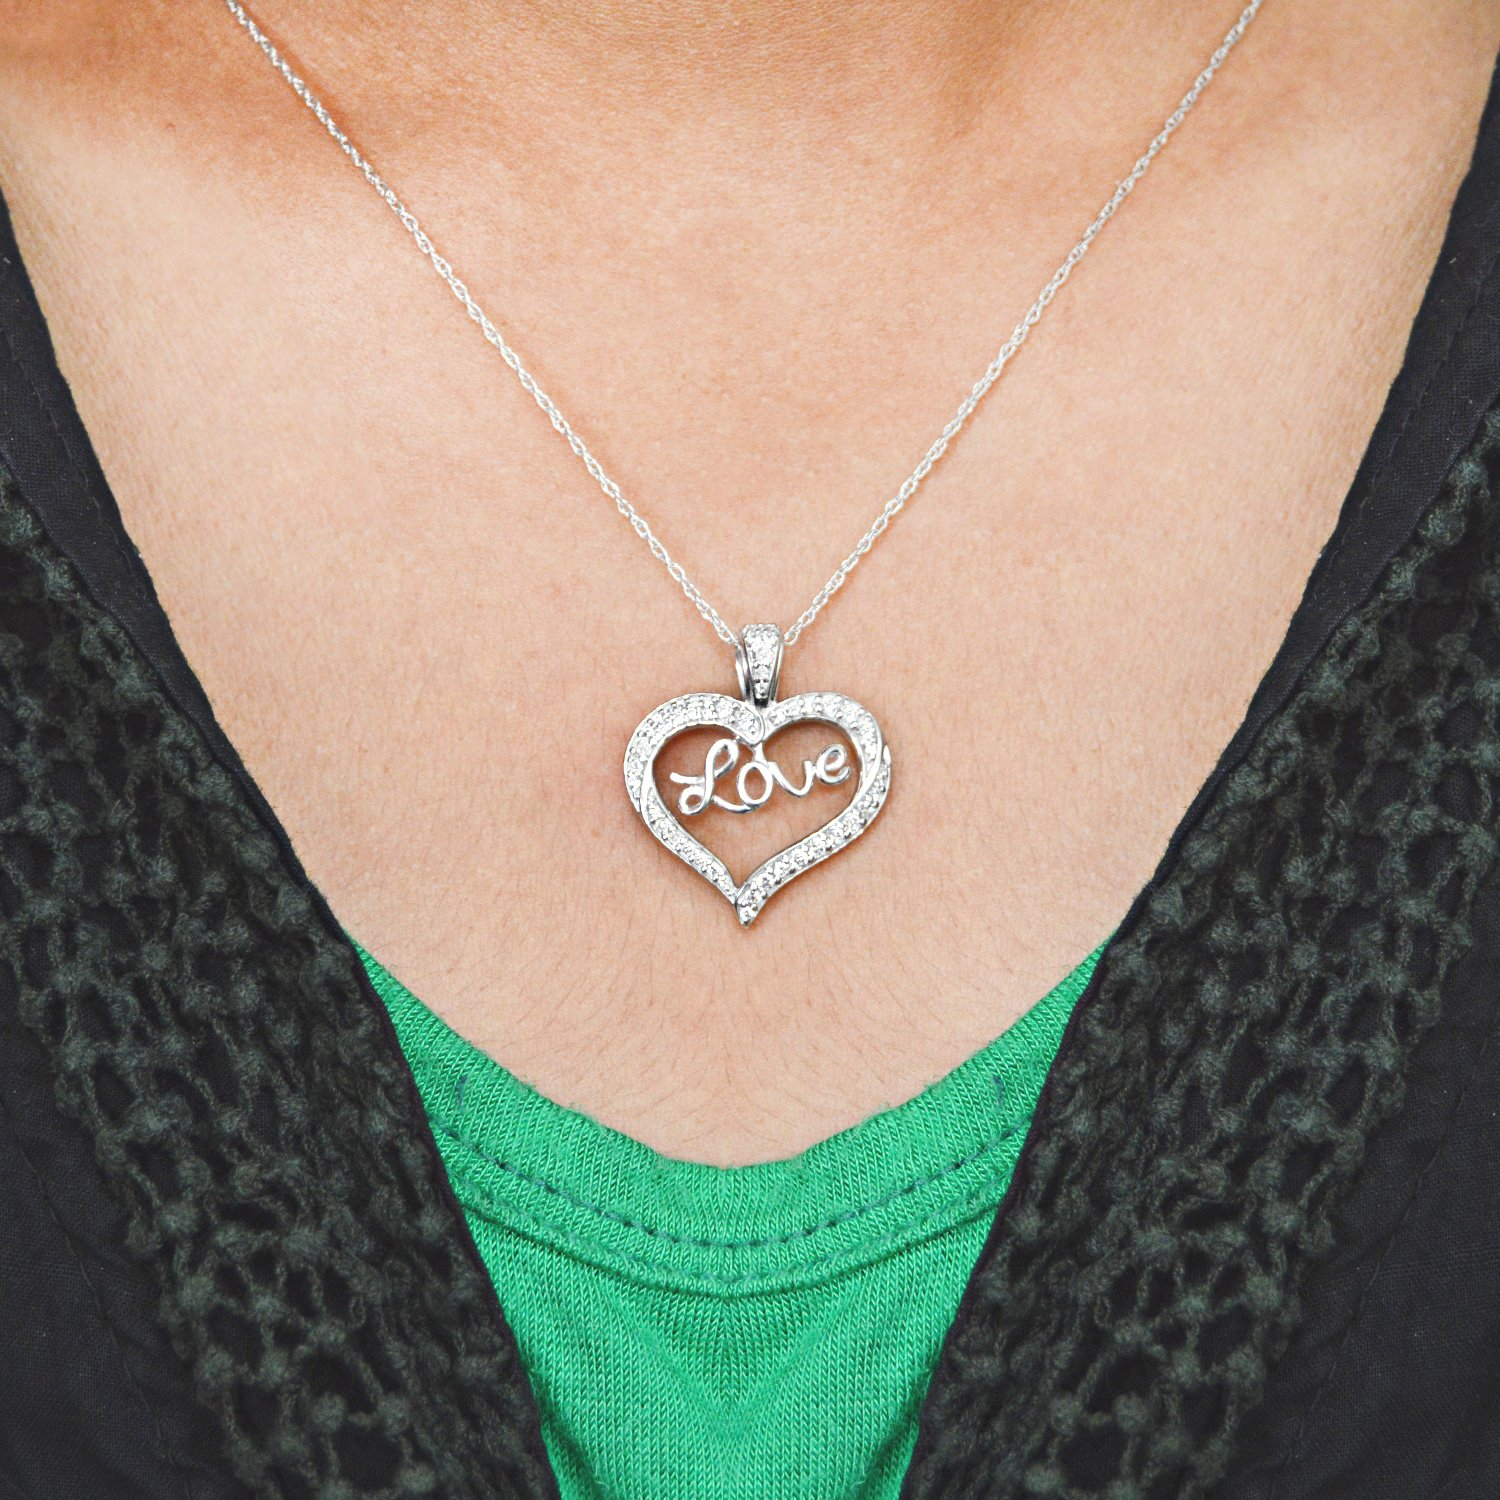 925 Sterling Silver Womens Round CZ Cubic Zirconia Simulated Diamond Love Heart Fashion Charm Pendant Necklace Jewelry Gifts for Women